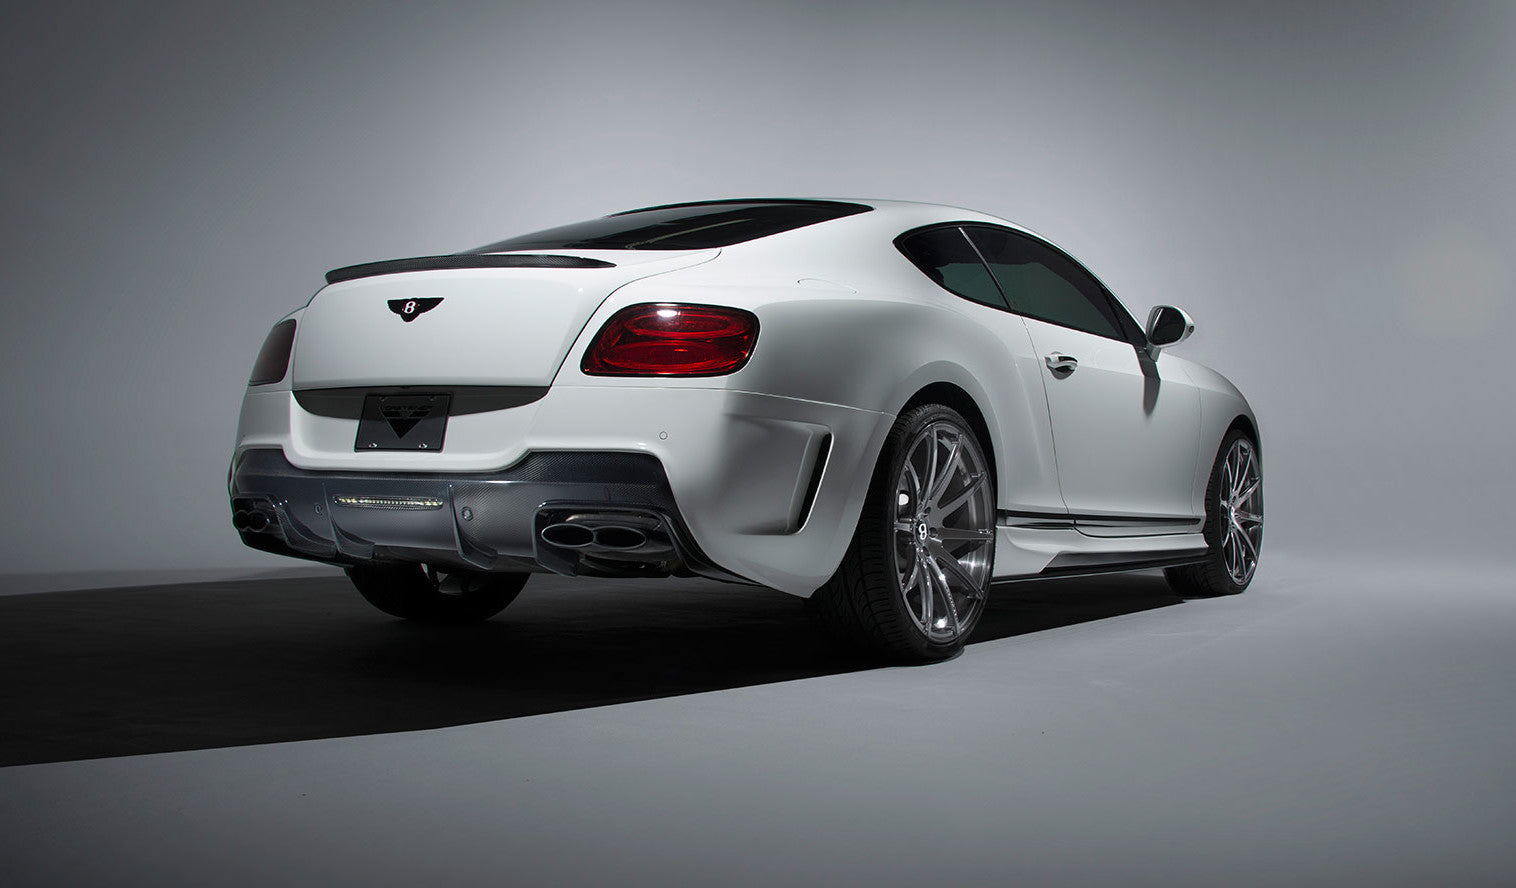 BENTLEY CONTINENTAL GT V8 FACELIFT BR AERO VORSTEINER KIT